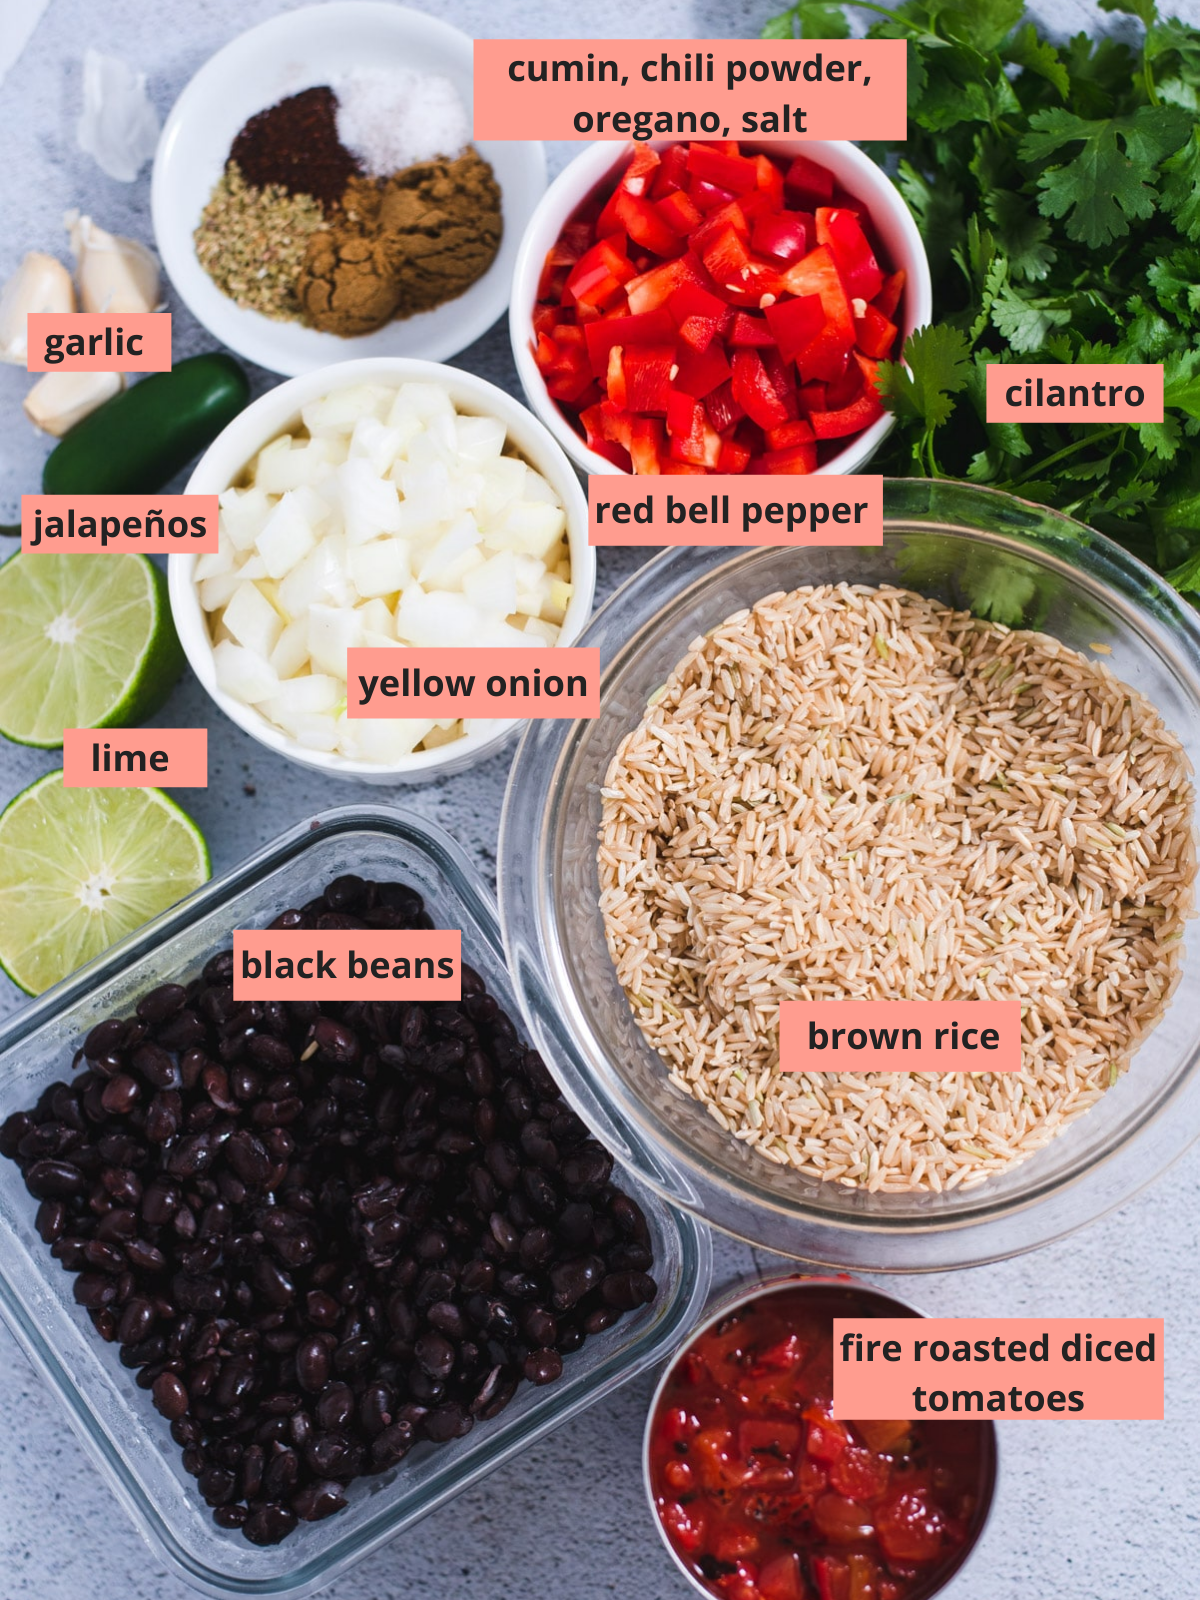 Labeled ingredients used to make rice and beans